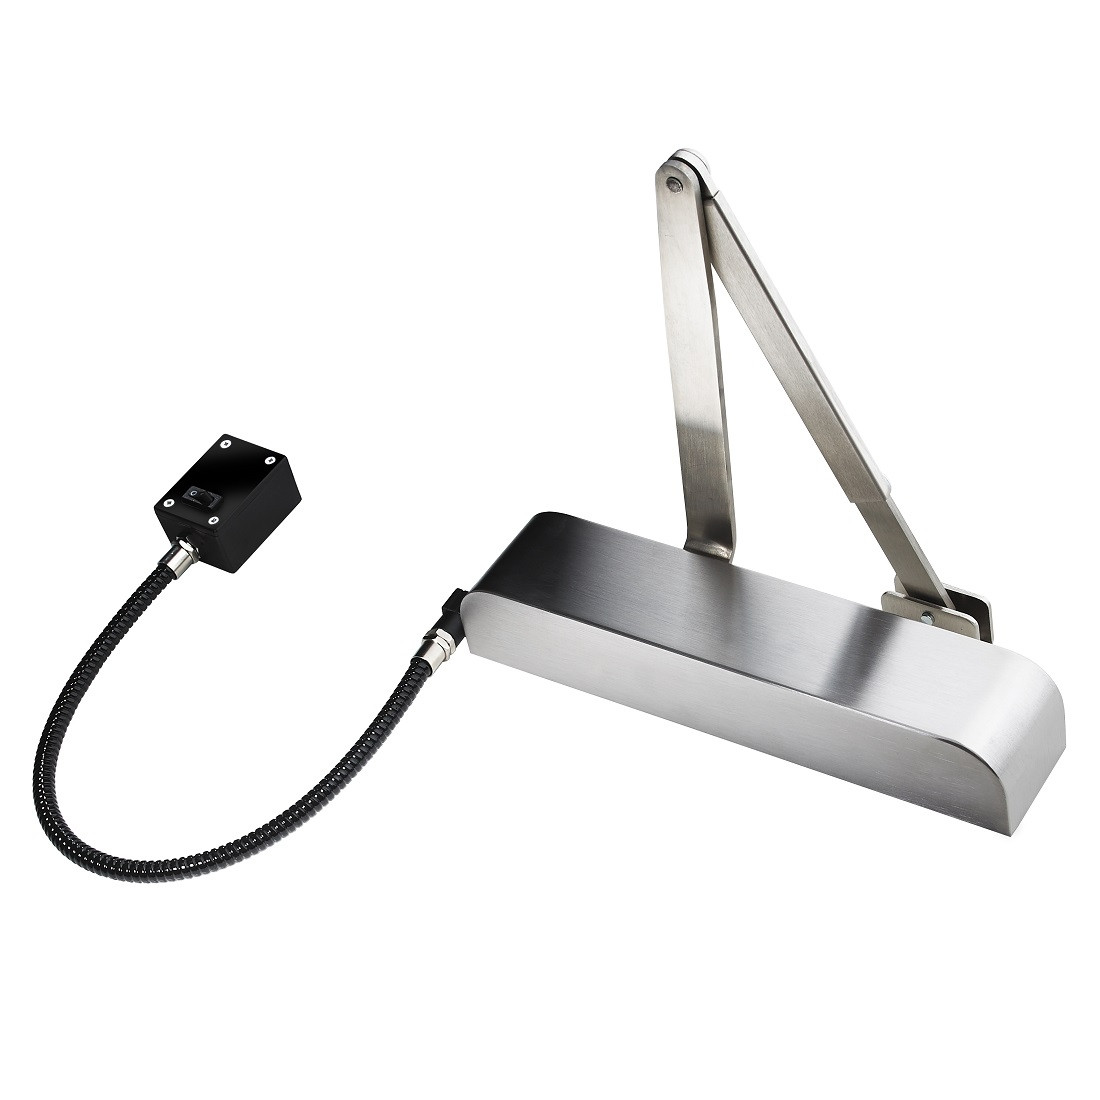 Exidor 9870 EN4 Hold Open / Free Swing E-Mag Door Closer - Radius Cover - Satin Stainless Steel